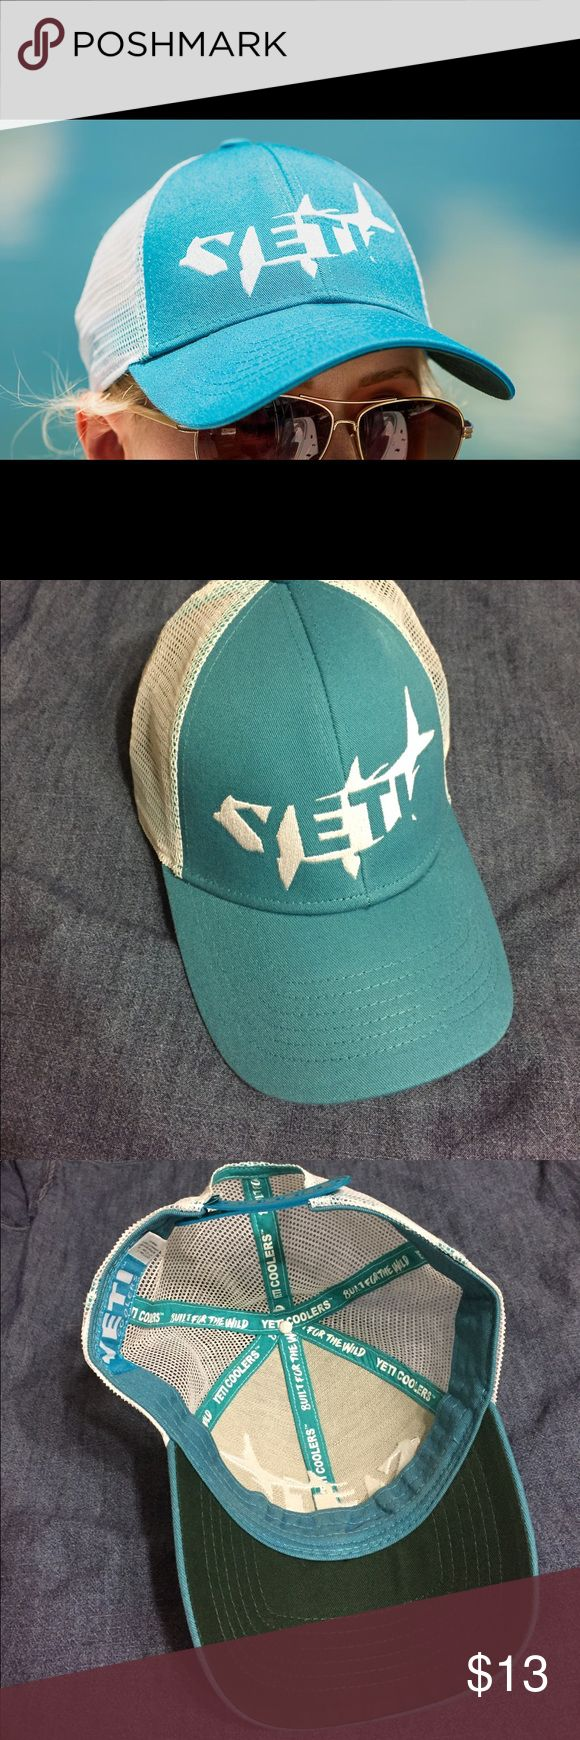 Yeti Trucker Style Hat NWOT Yeti Coolers trucker hat - real. Never worn, perfect condition! Yeti Accessories Hats